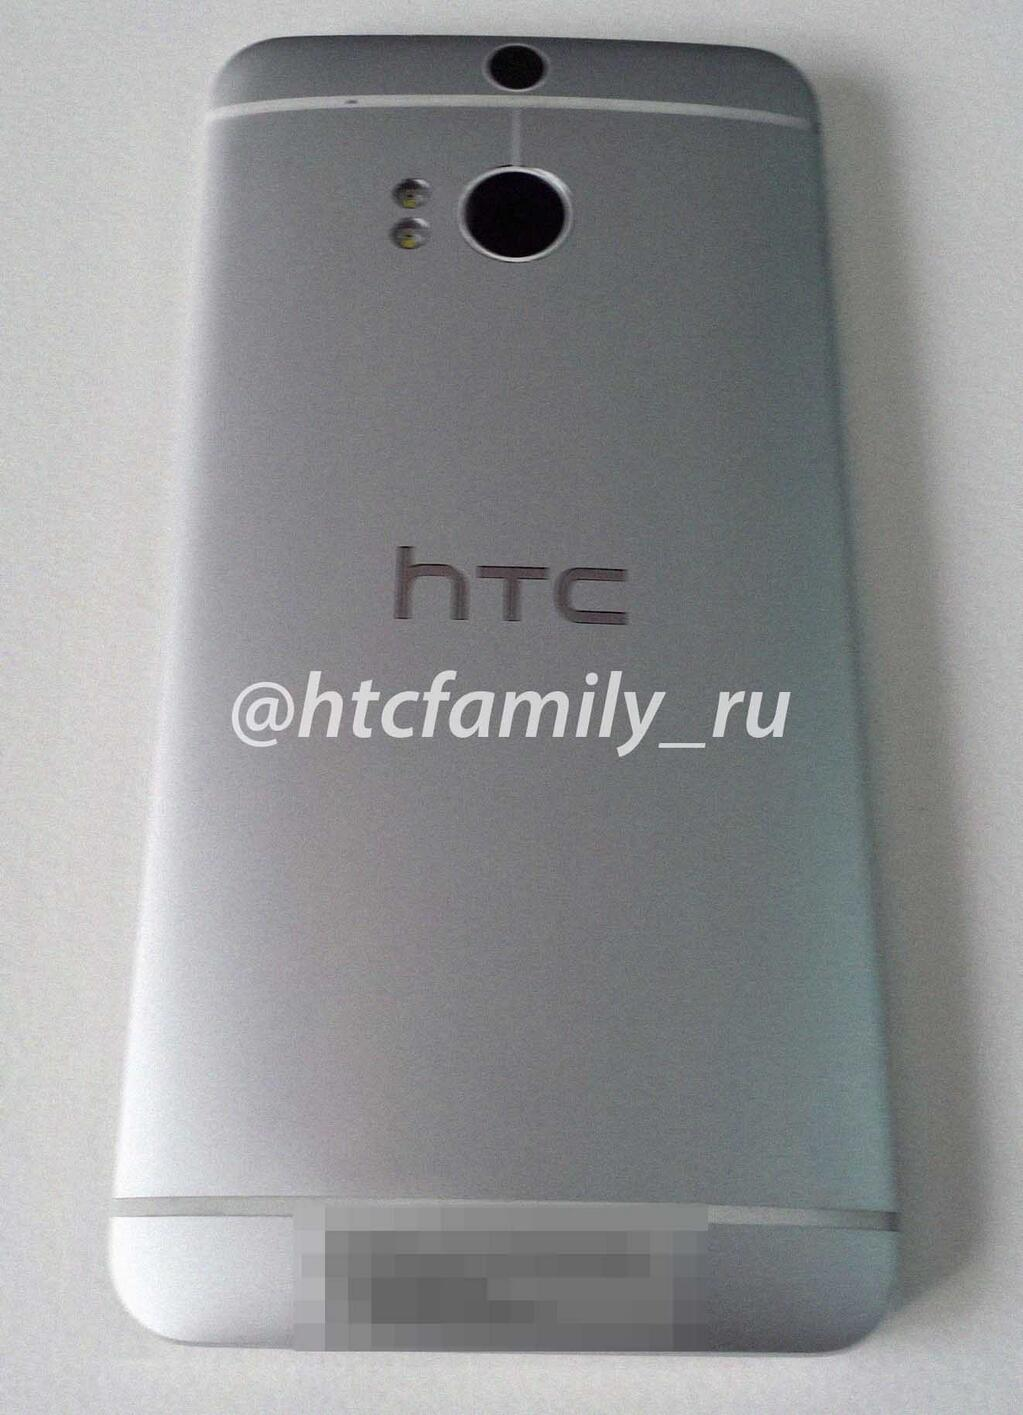 HTC One's successor the M8 (One Plus) has live accessories